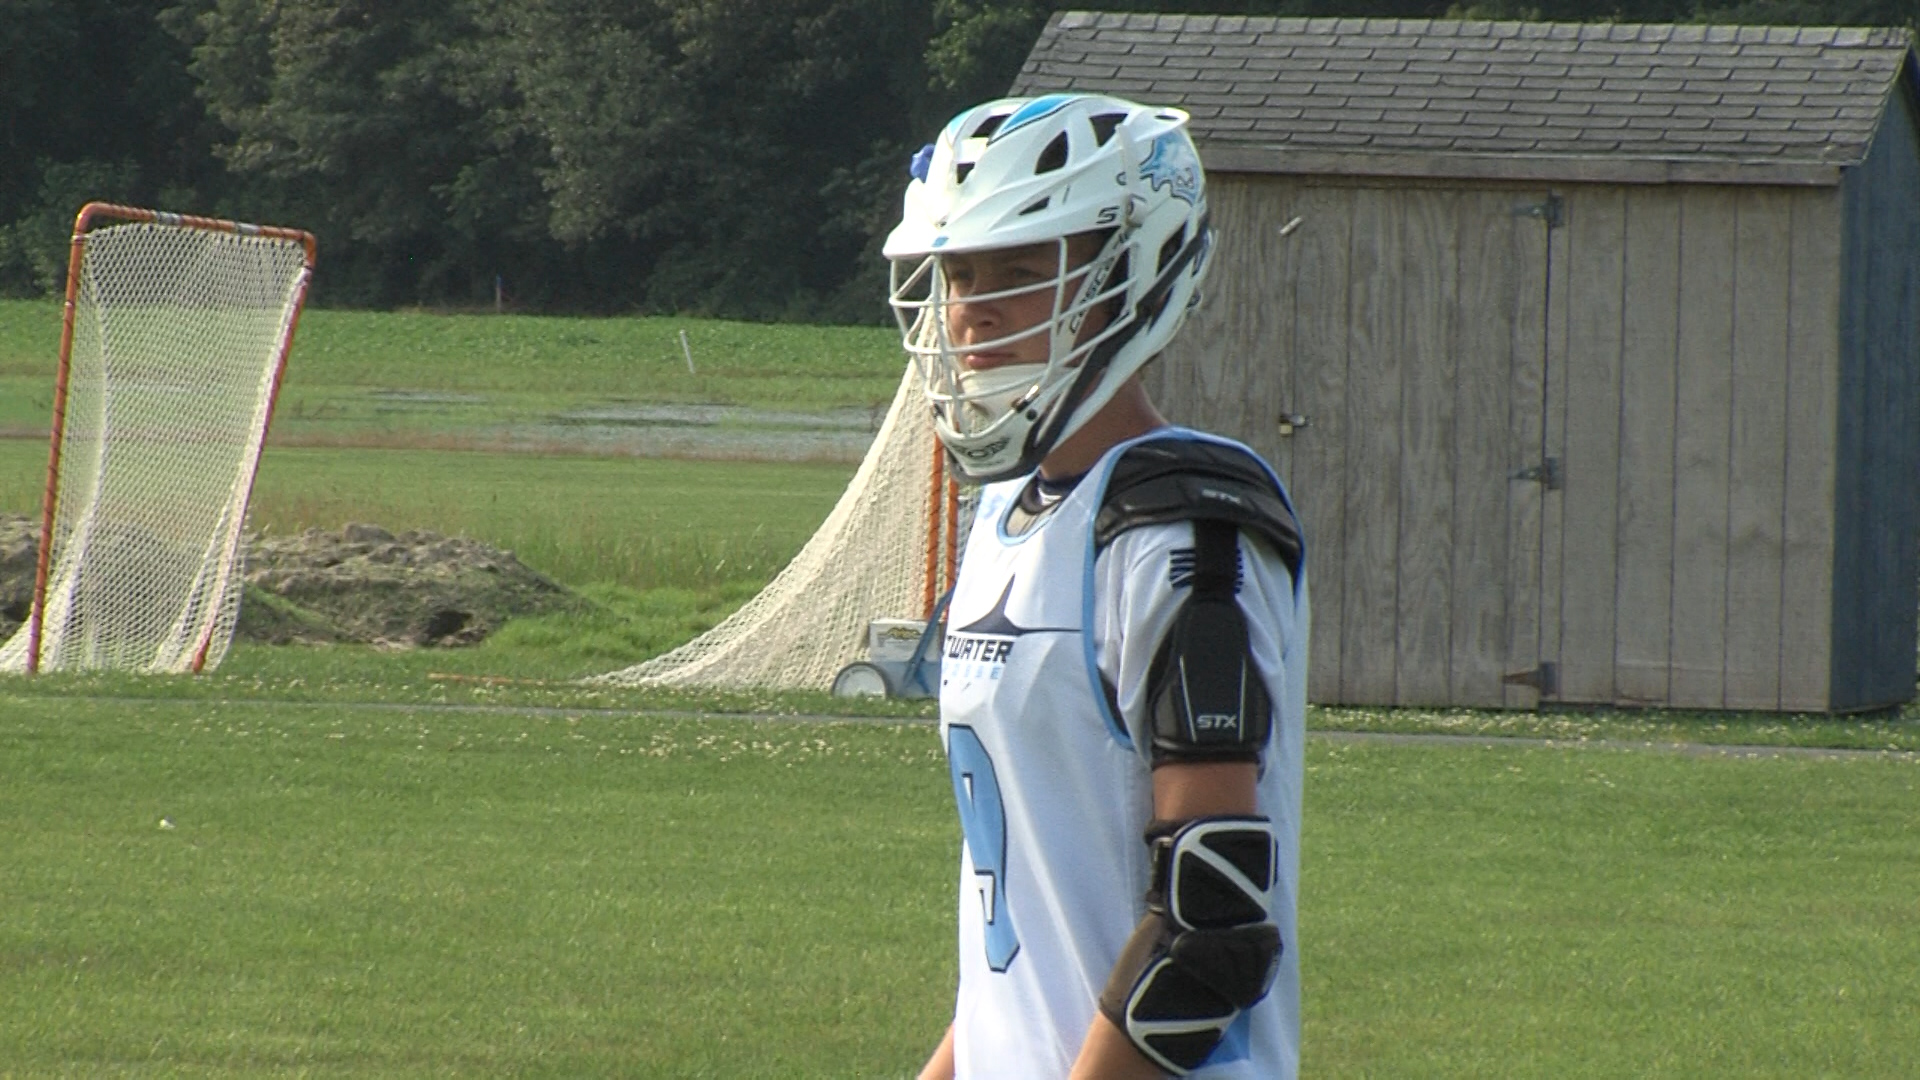 Delmarva Based Youth Lacrosse Team Ready For The Rocky Mountains